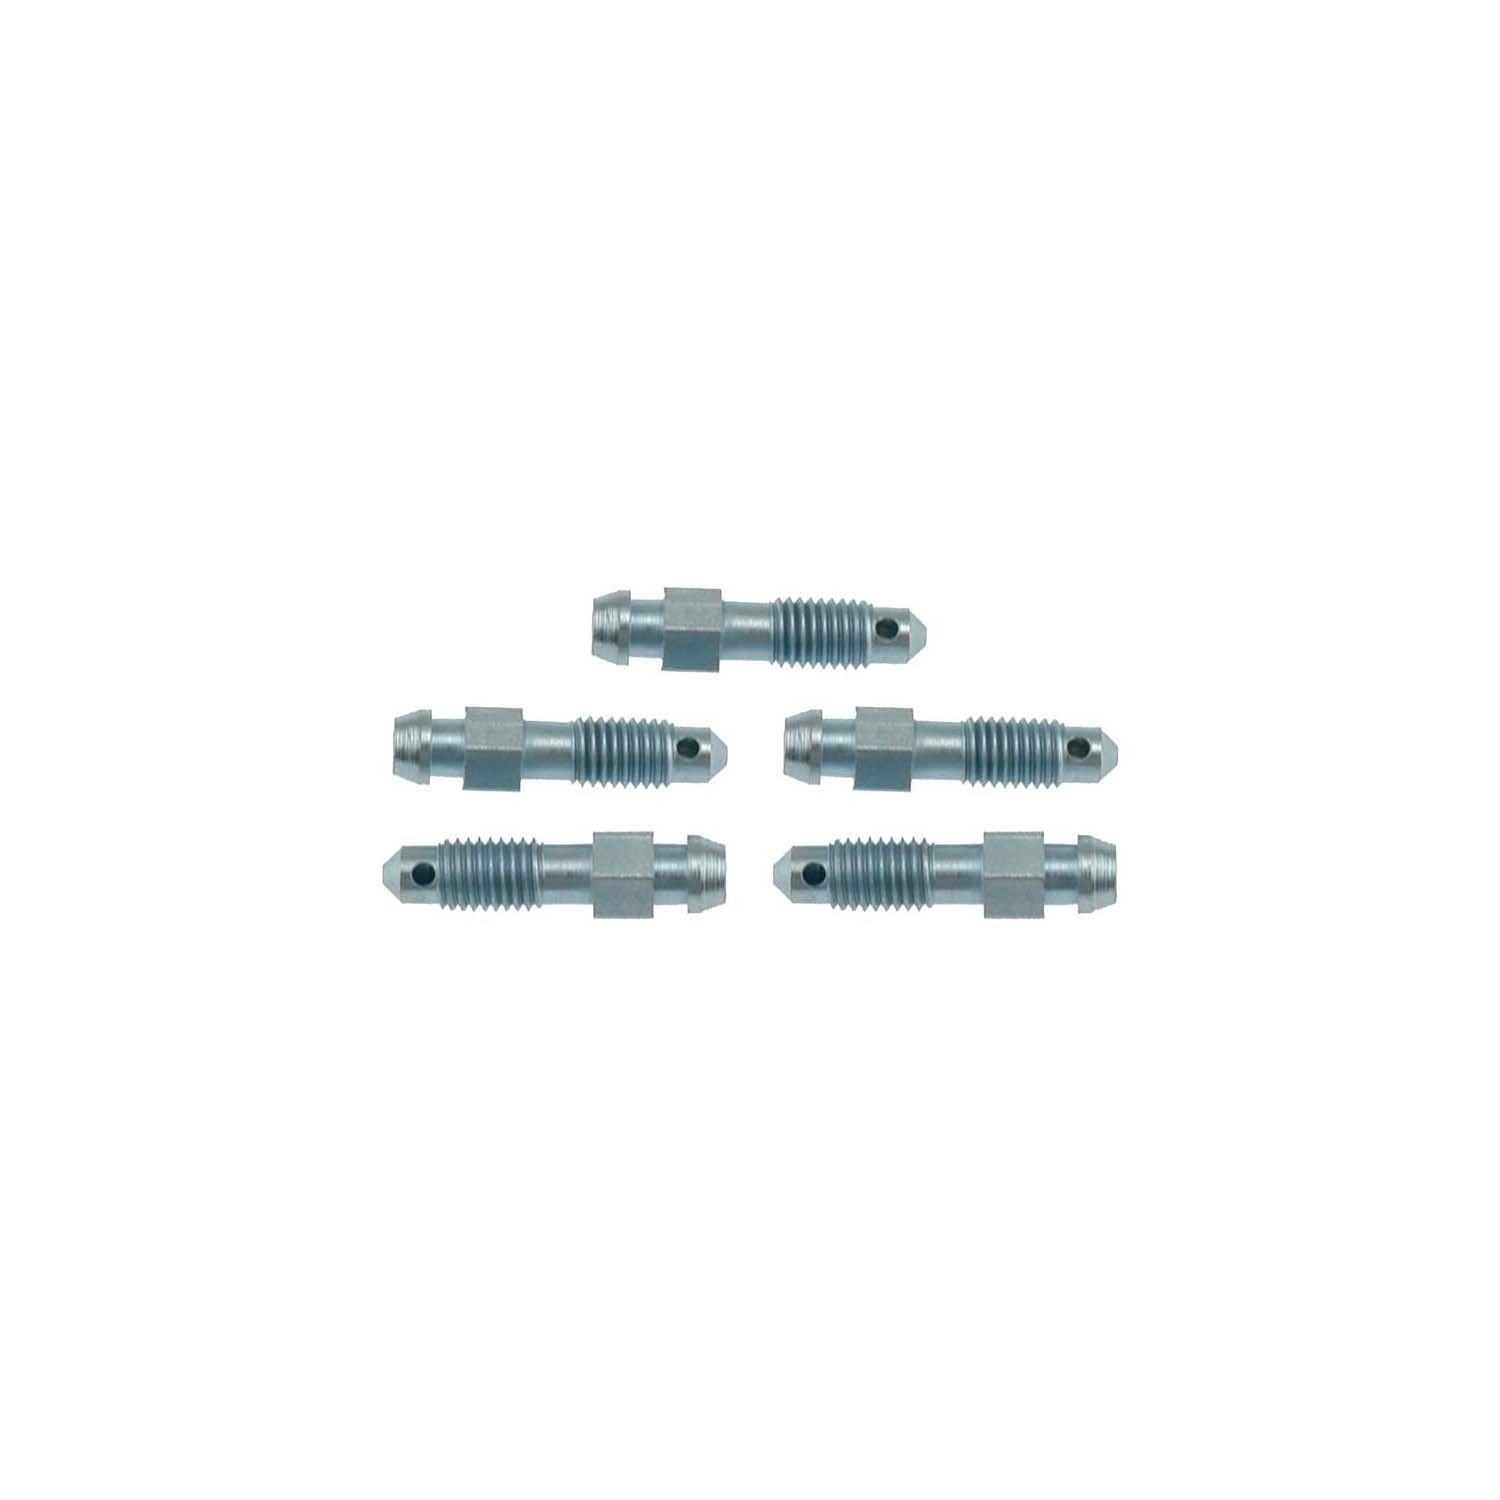 Ford Focus Brake Bleeder Screw Replacement (Carlson, Russell